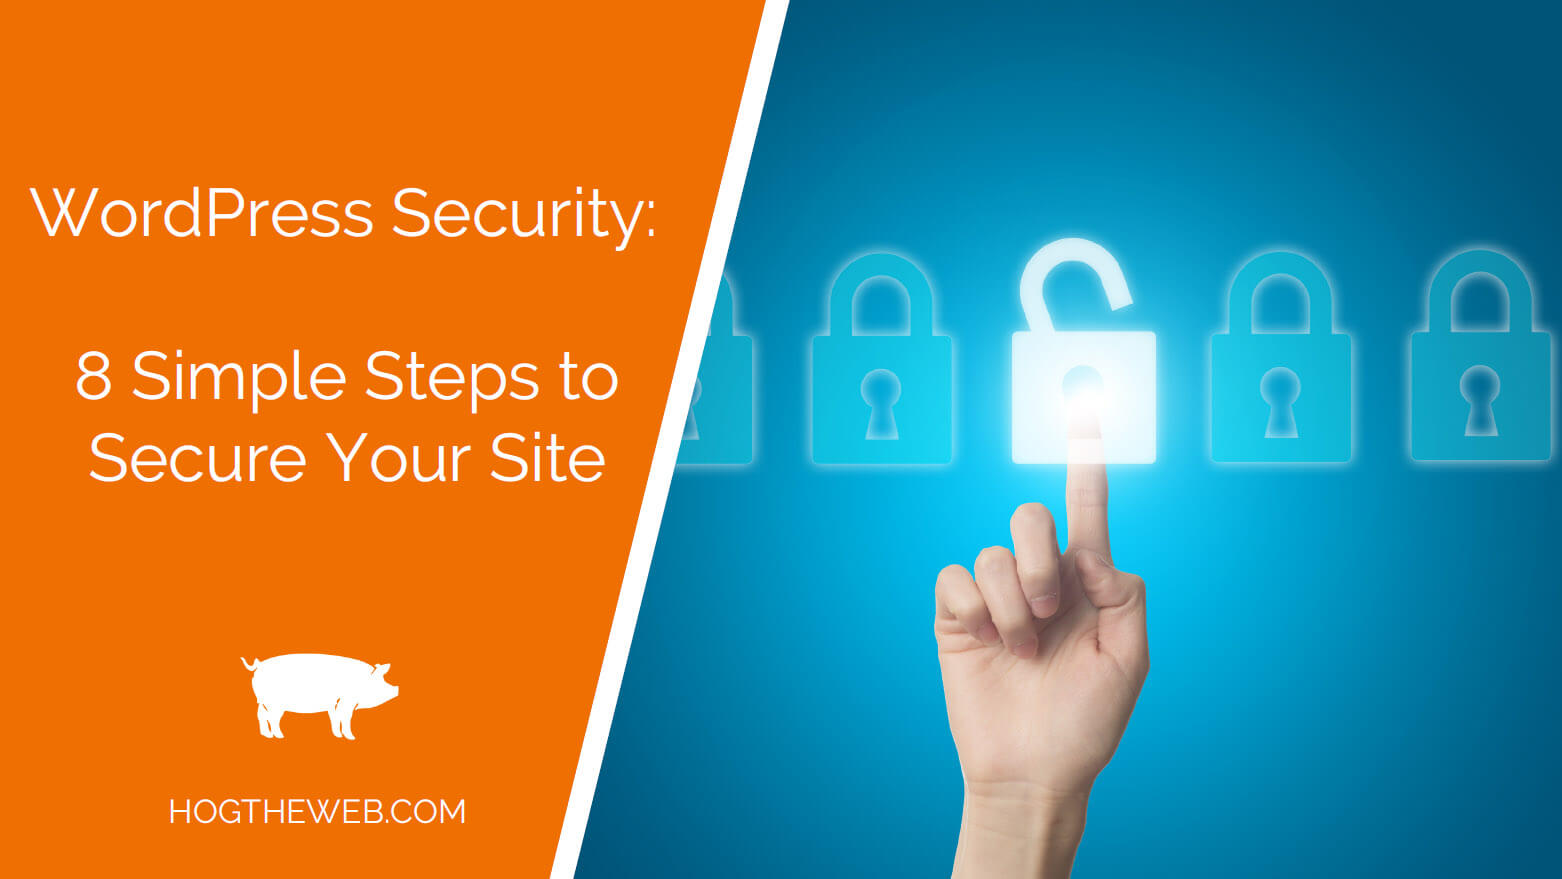 WordPress Security – 8 Simple Steps to Secure Your Site